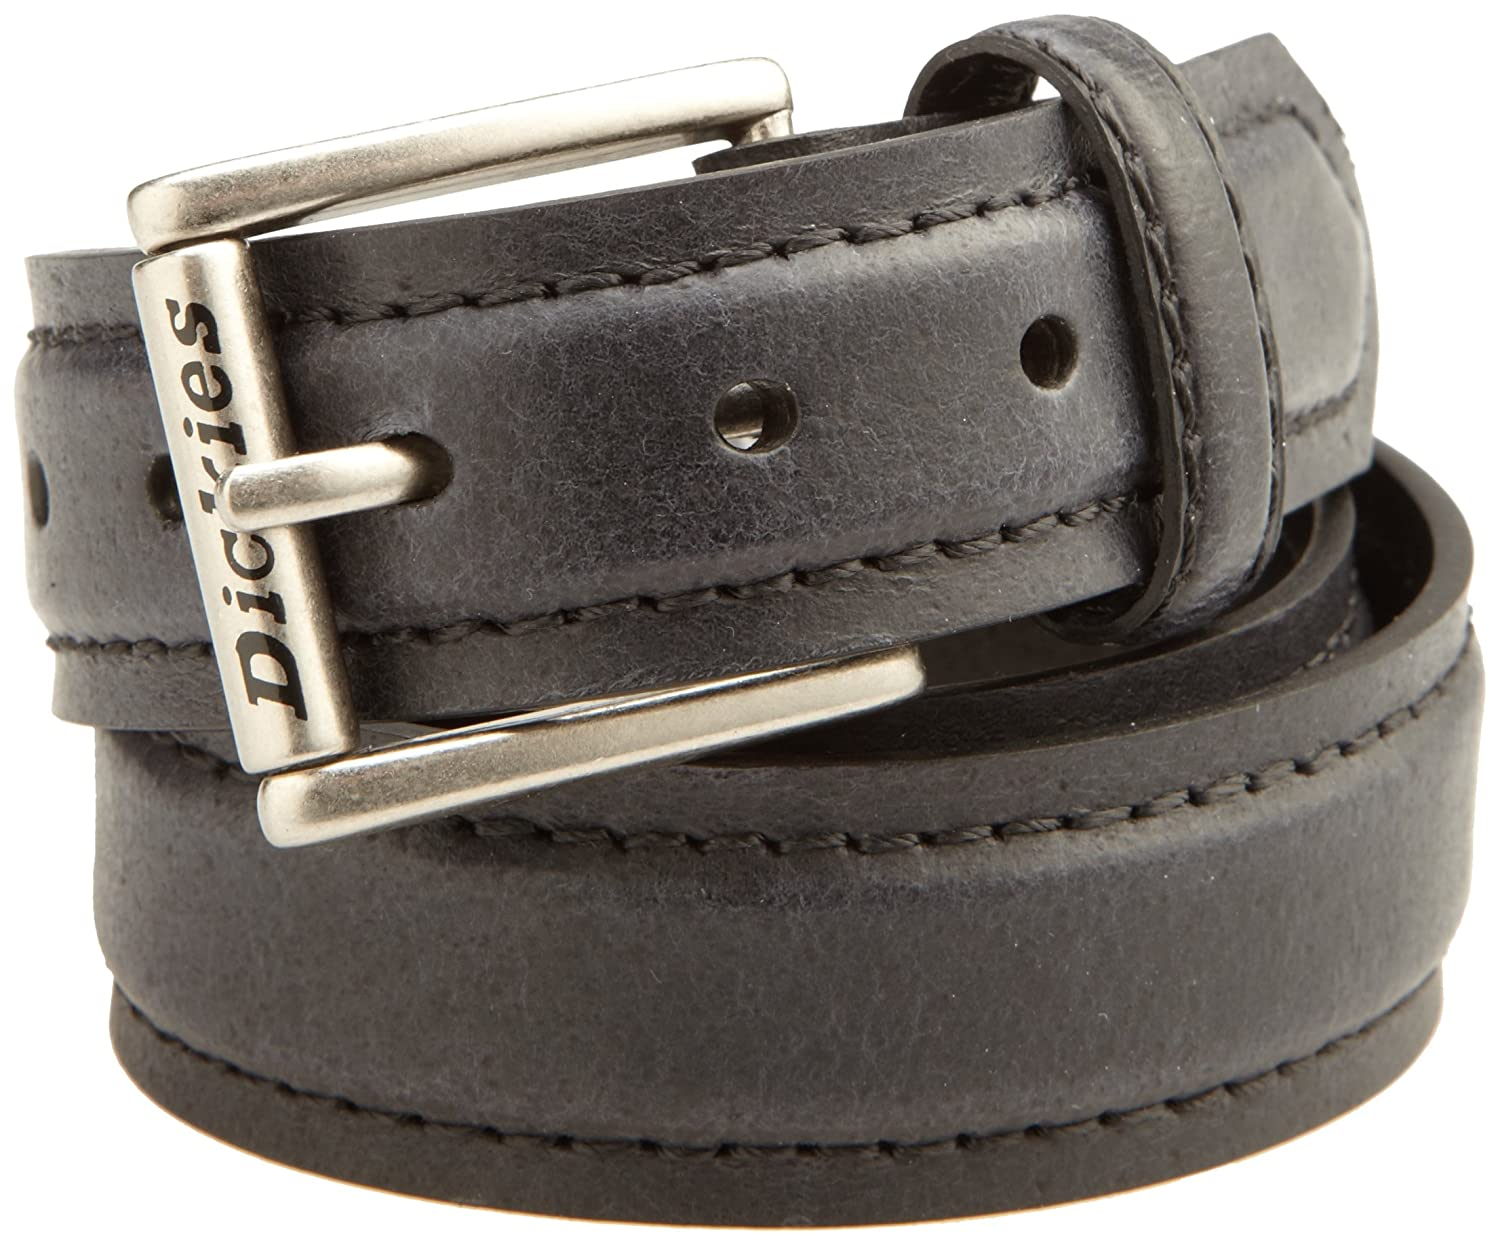 Dickies Boys Casual Belt With Stitching